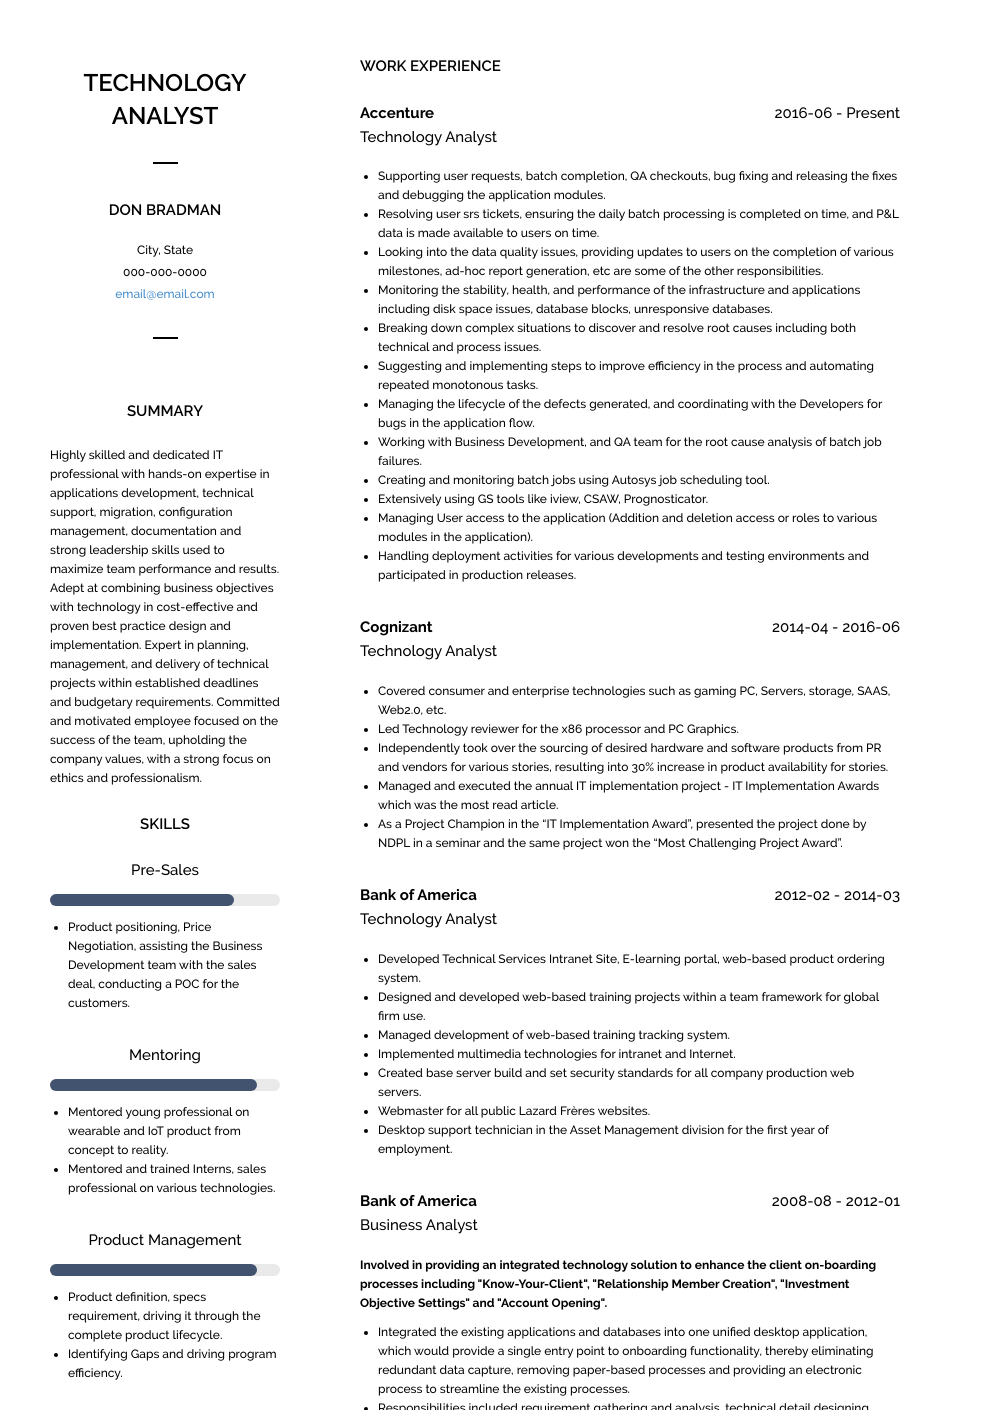 Technology Analyst Resume Samples And Templates Visualcv